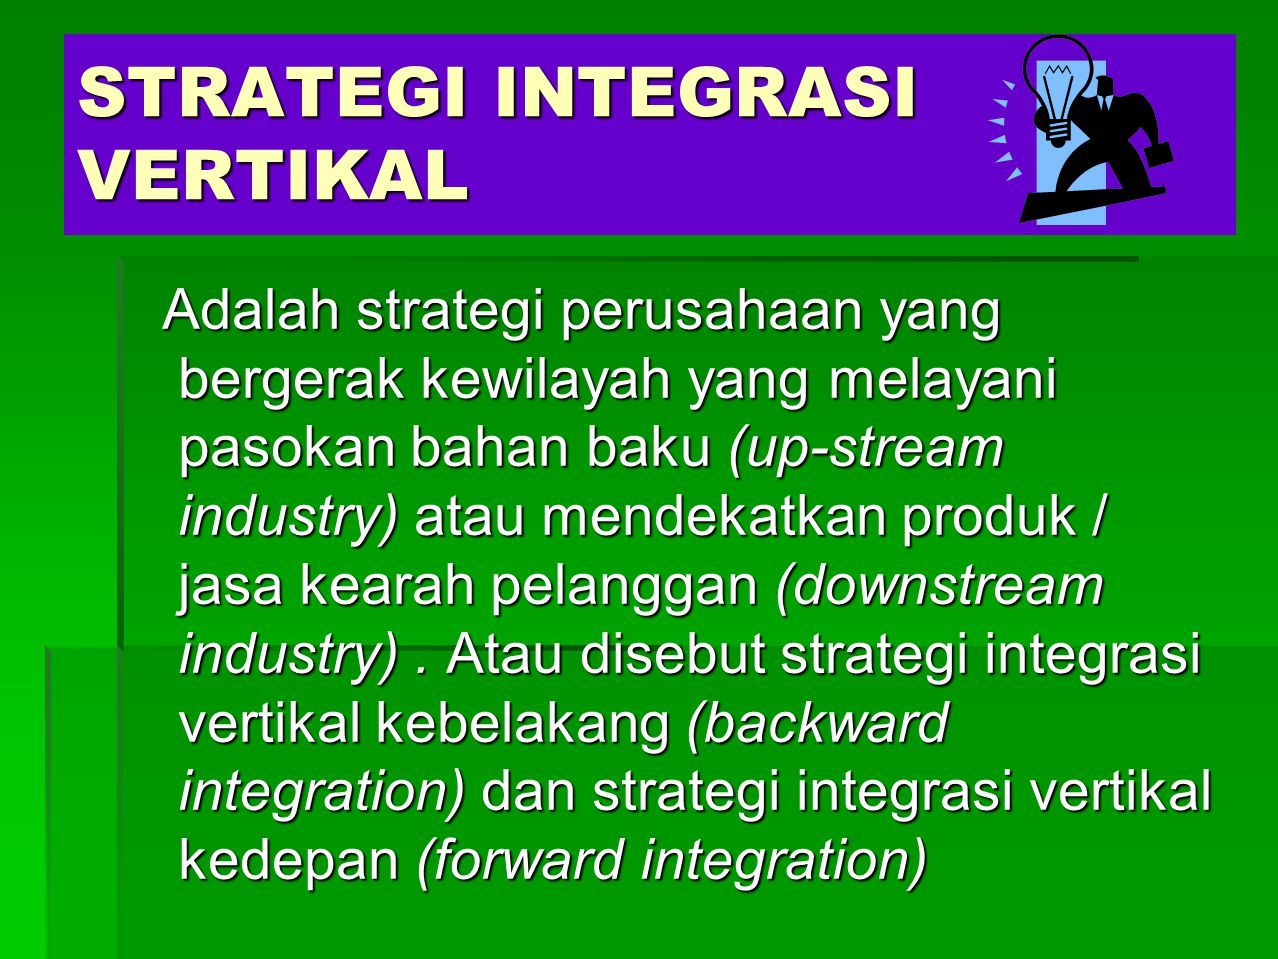 STRATEGI INTEGRASI VERTIKAL